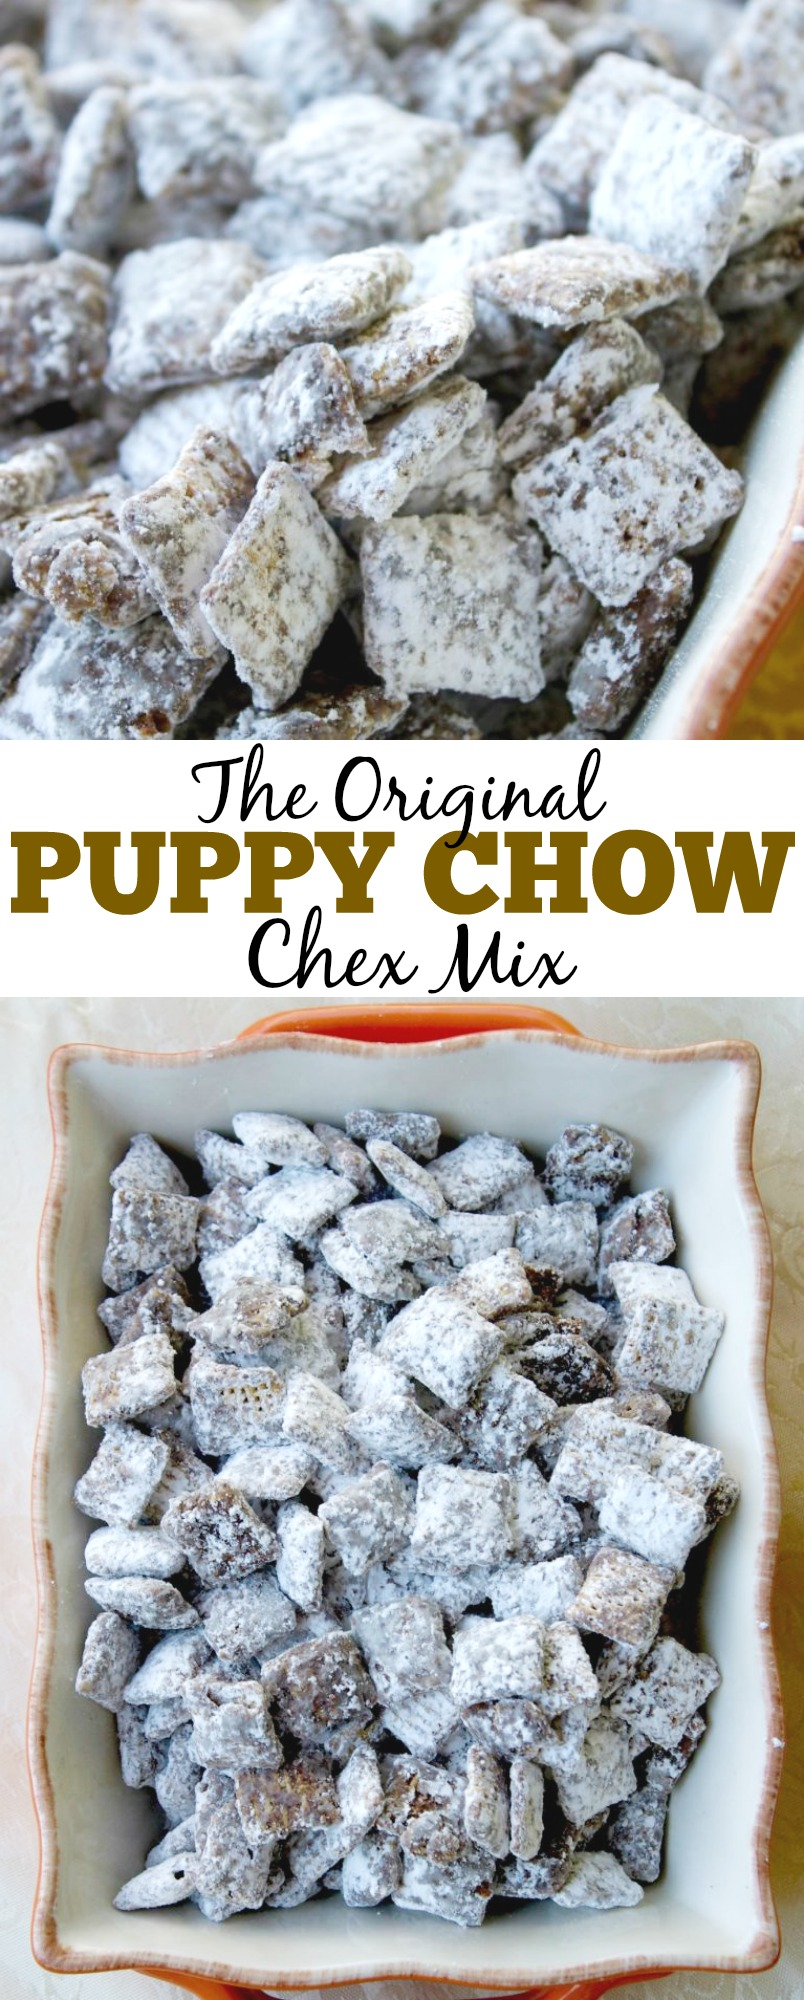 The Original Puppy Chow Chex Mix Recipe. This is our favorite chocolate treat to make. It's a great sweet or dessert for any occasion. These are also called muddy buddies!